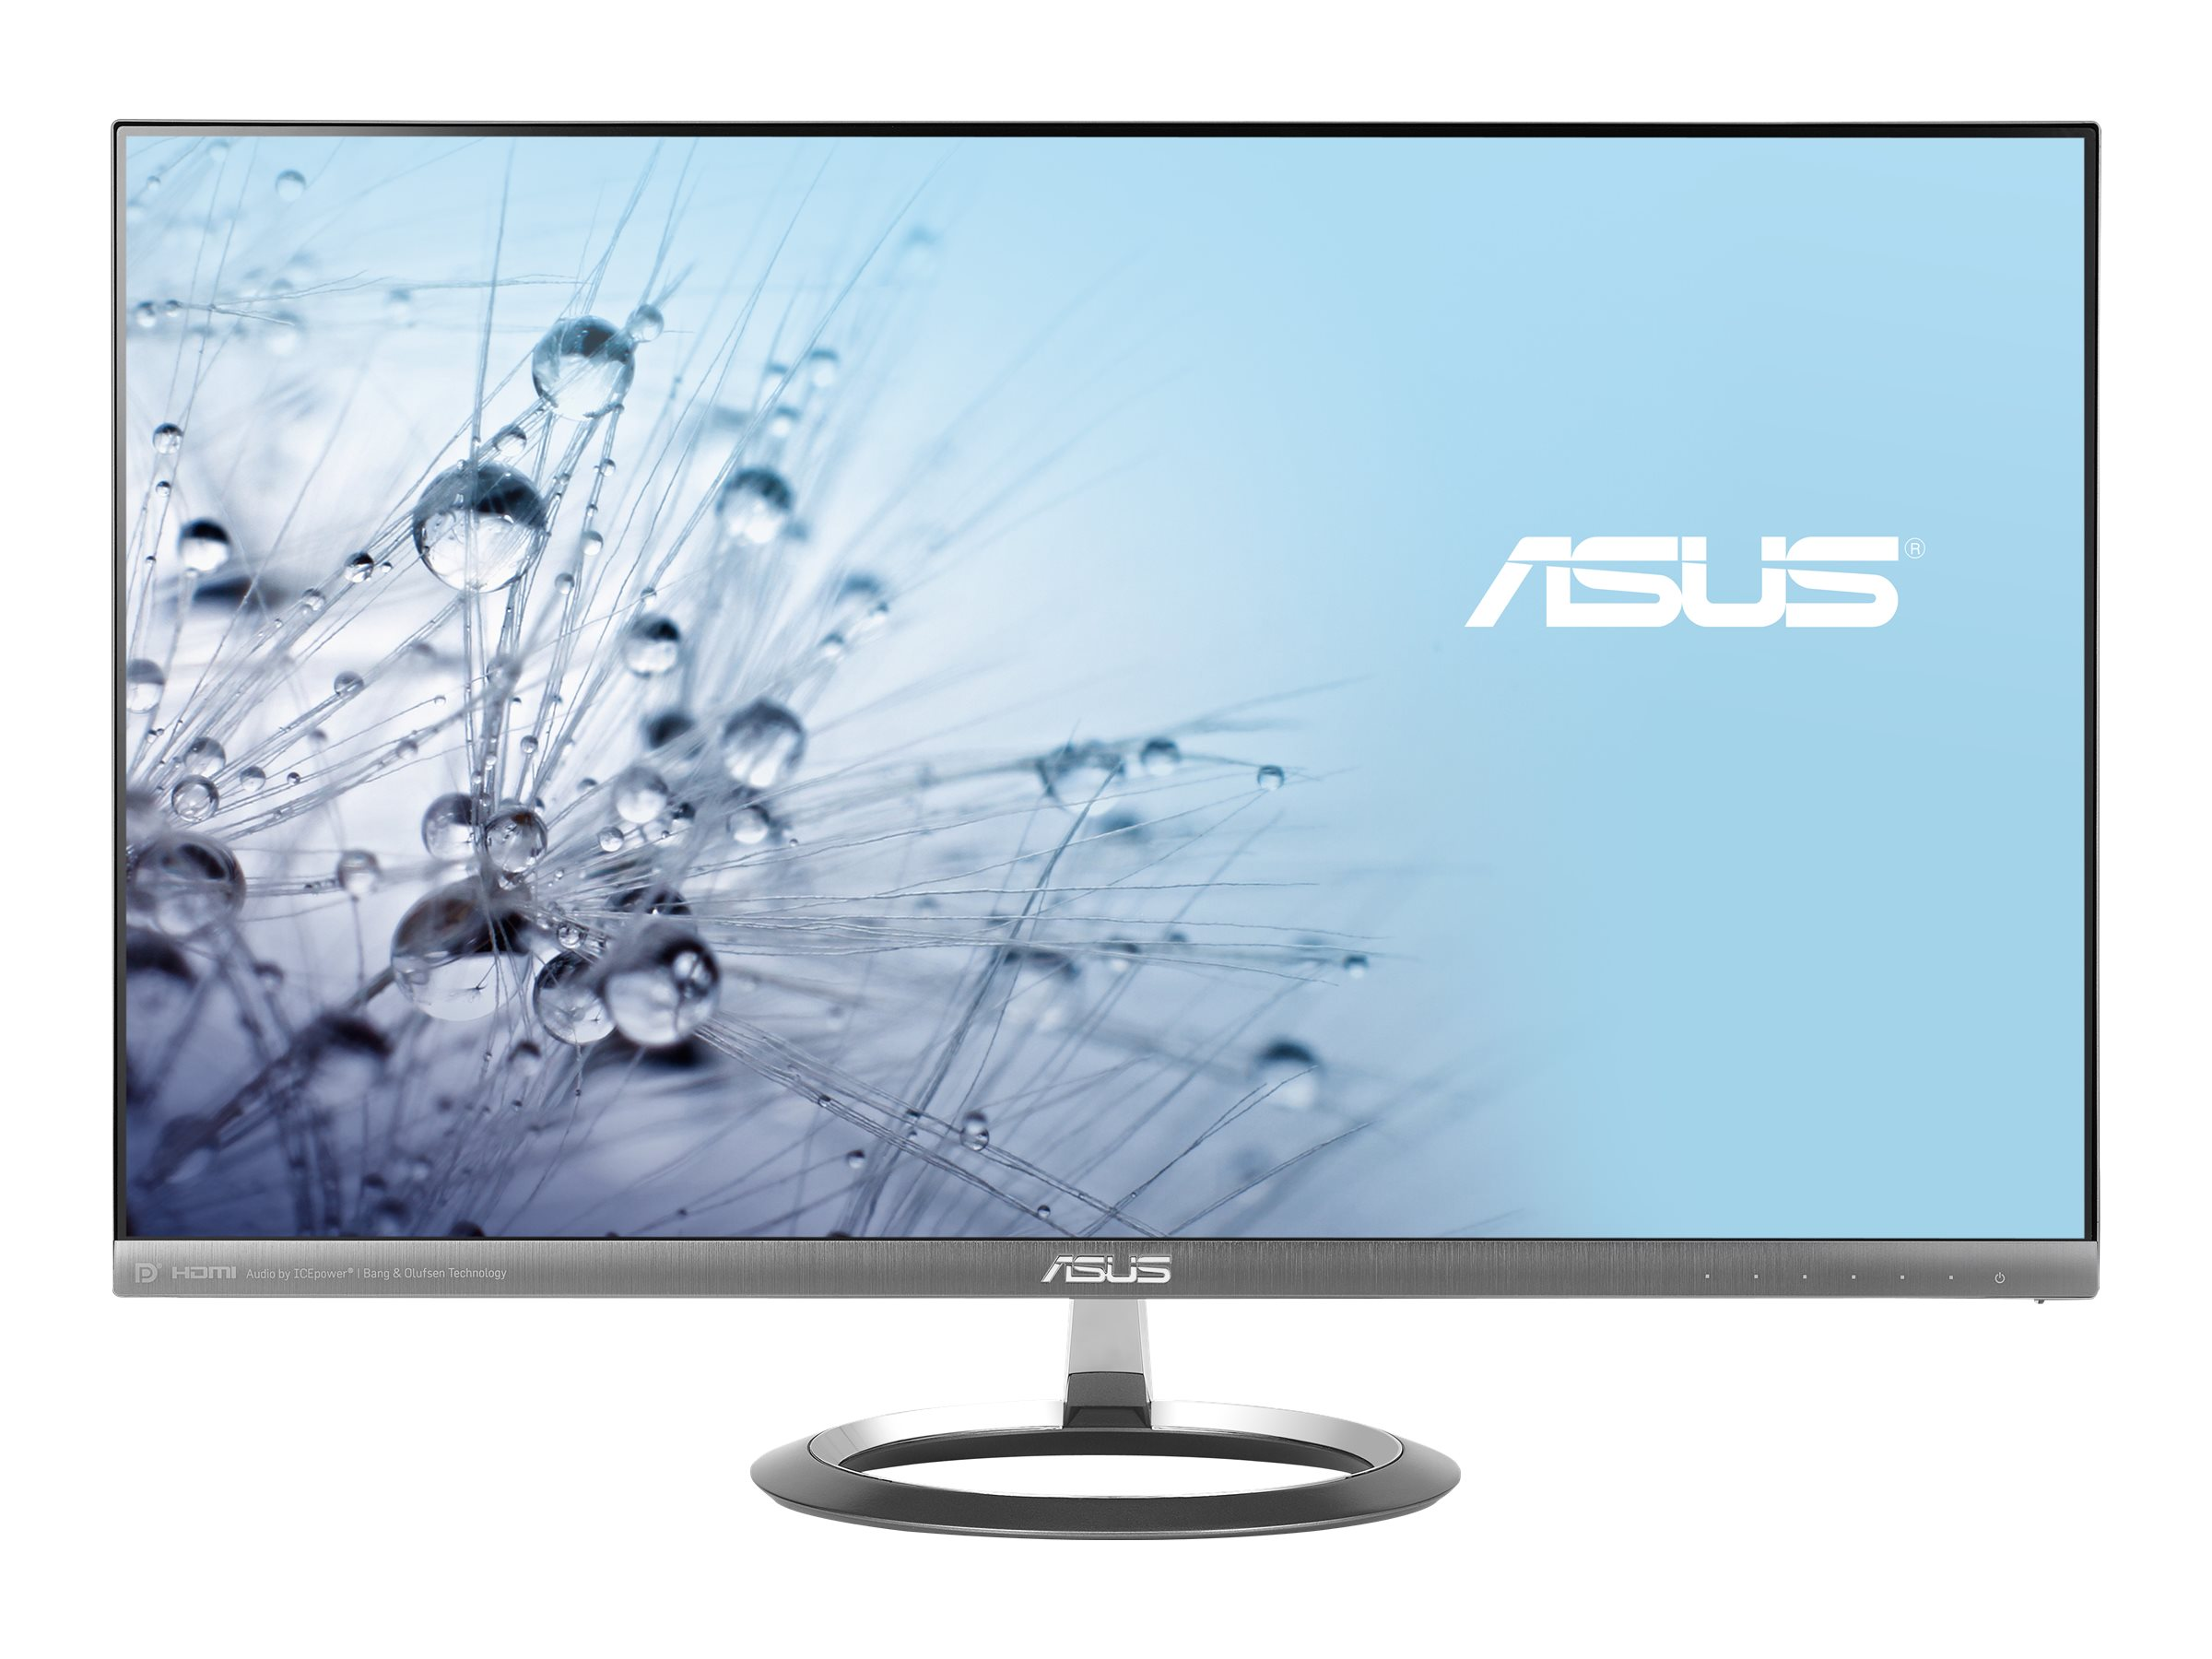 Asus 27 MX27AQ WQHD LED-LCD Monitor, Space Gray Black, MX27AQ